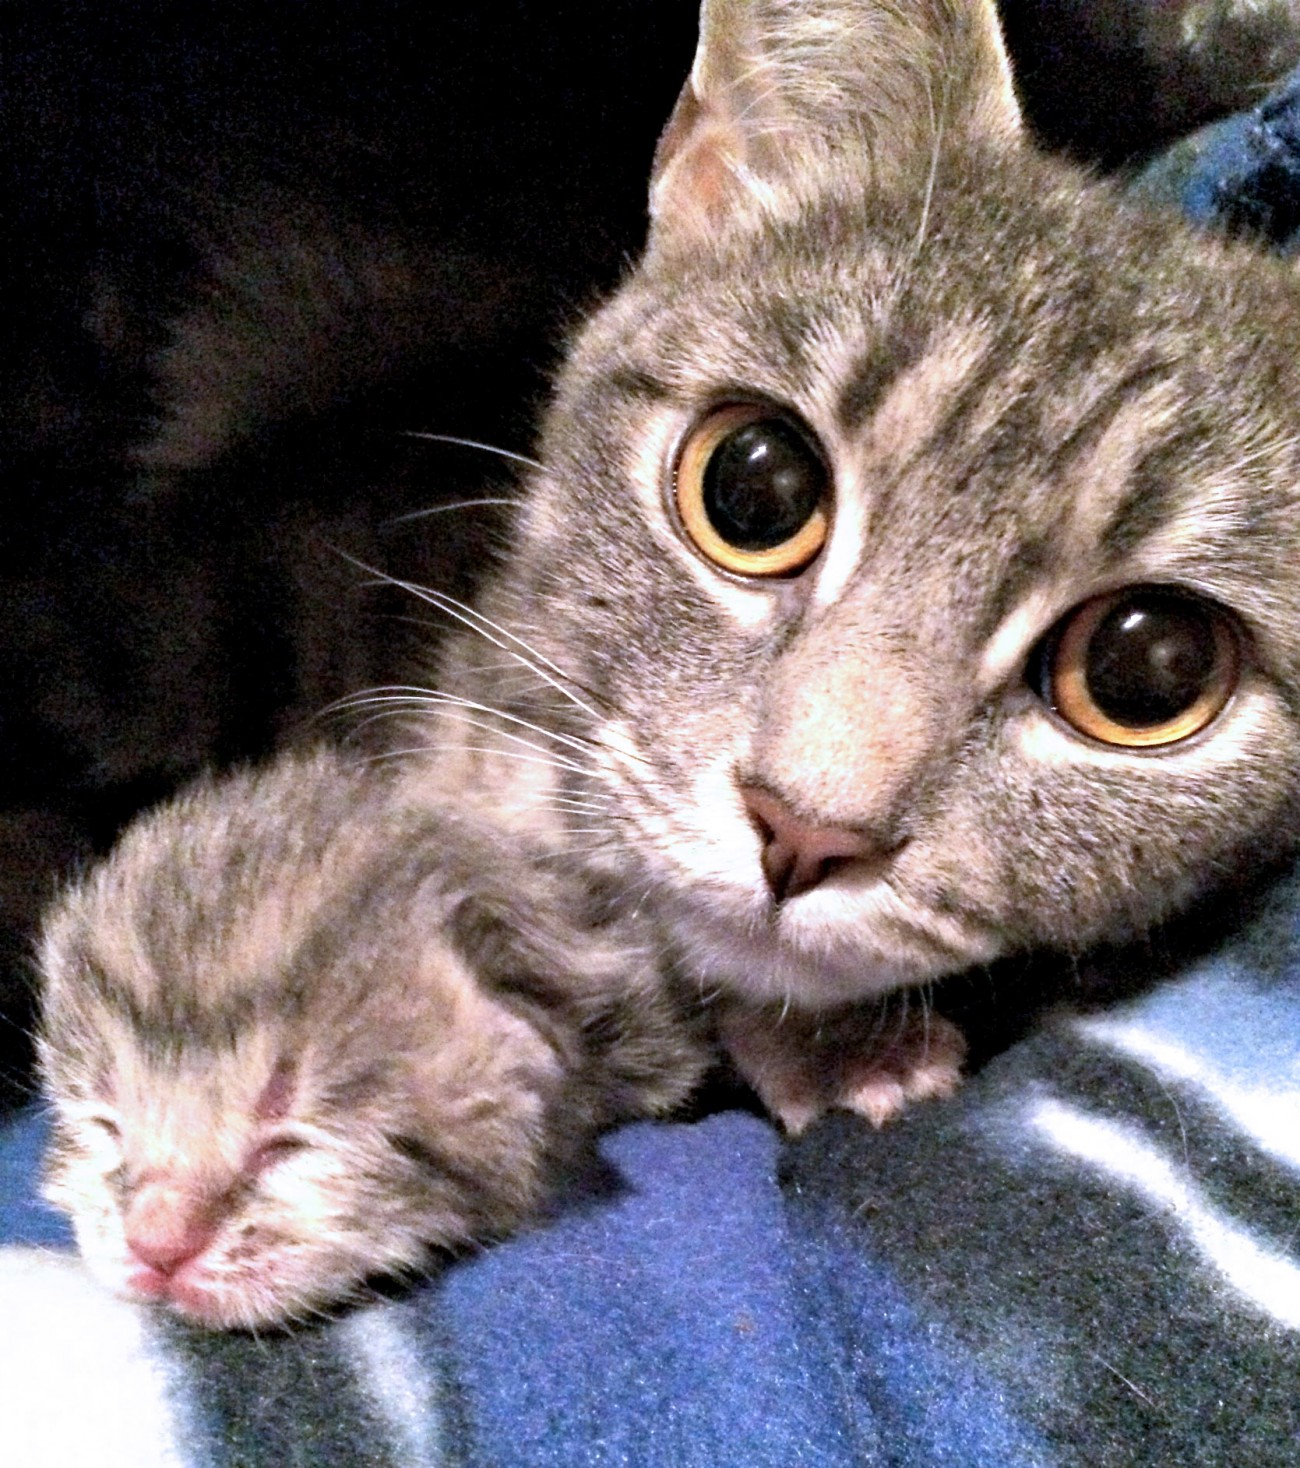 Mother cat and kitten photo